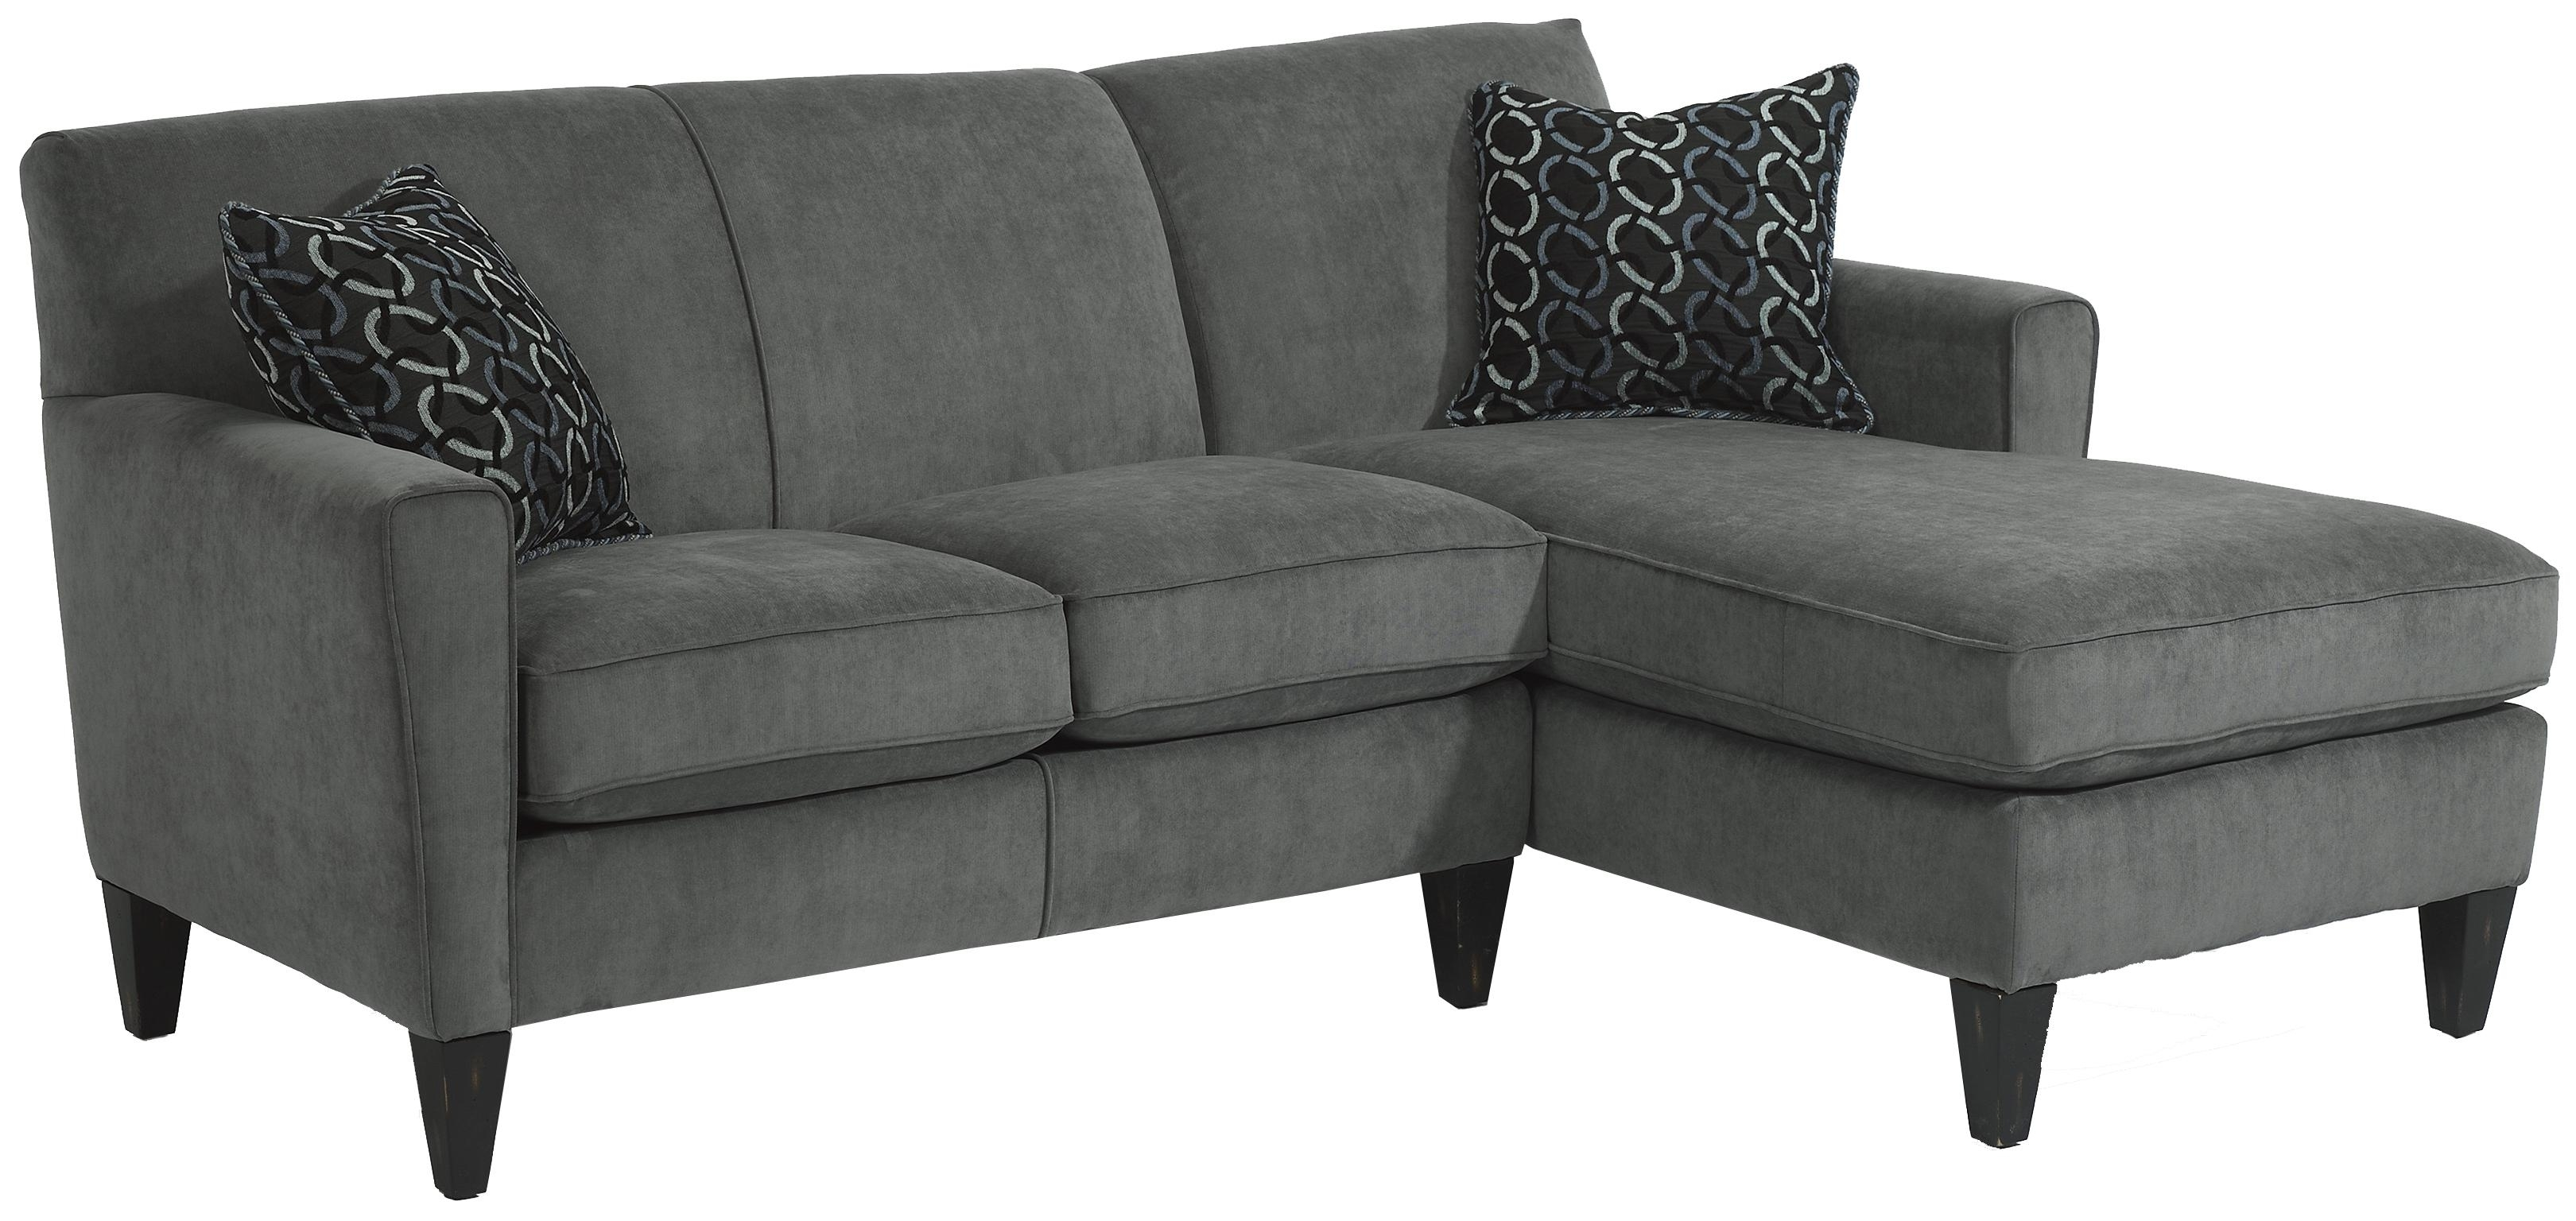 Flexsteel Digby Contemporary Sectional Sofa With Raf Chaise – Ahfa With Delano 2 Piece Sectionals With Raf Oversized Chaise (View 17 of 25)